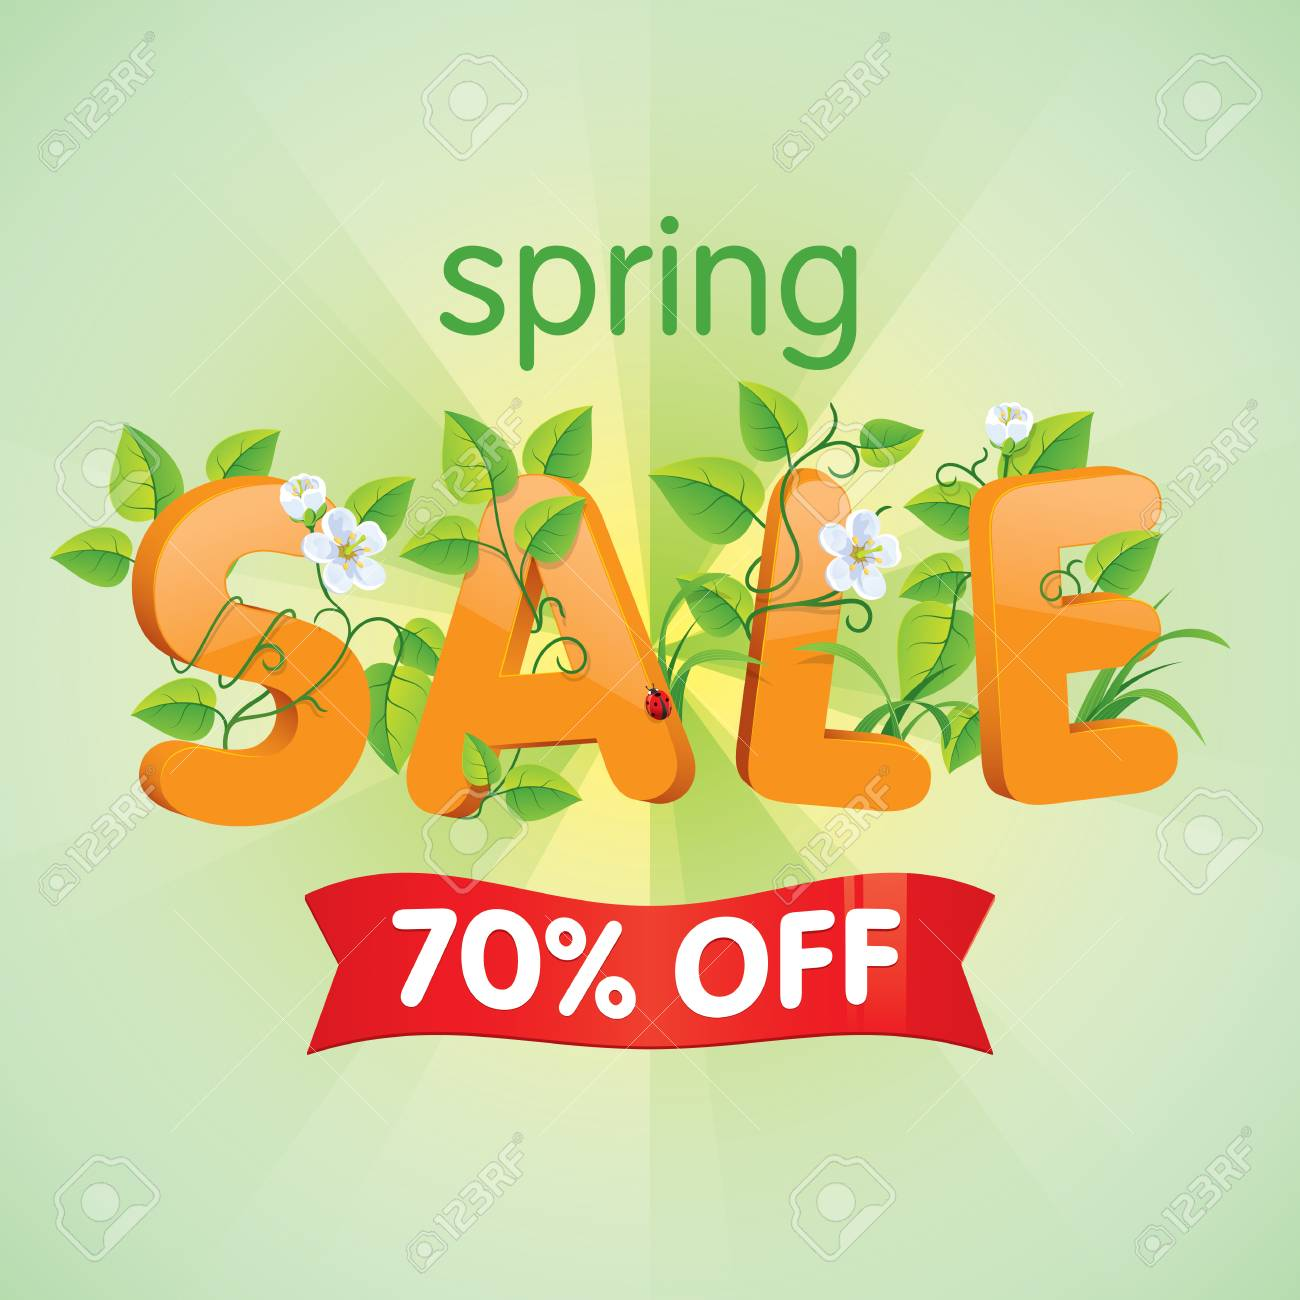 Spring Season Sale Seventy Percent Off Discount Decorated With